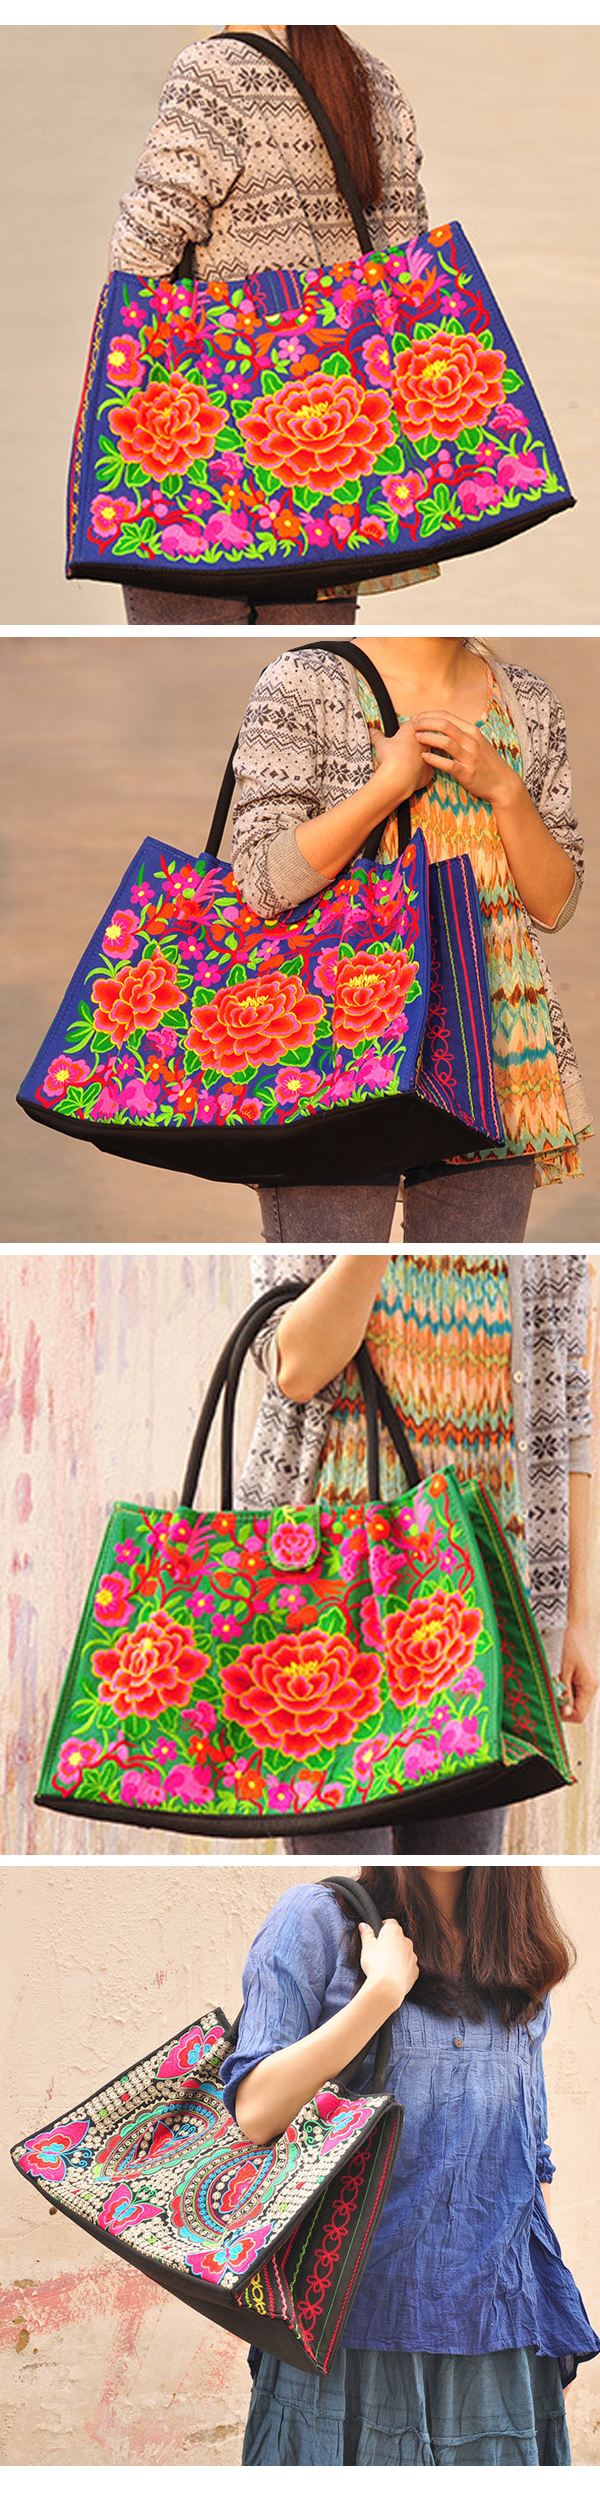 National Style Tote Bag Fashion Embroidery Bag Handbag